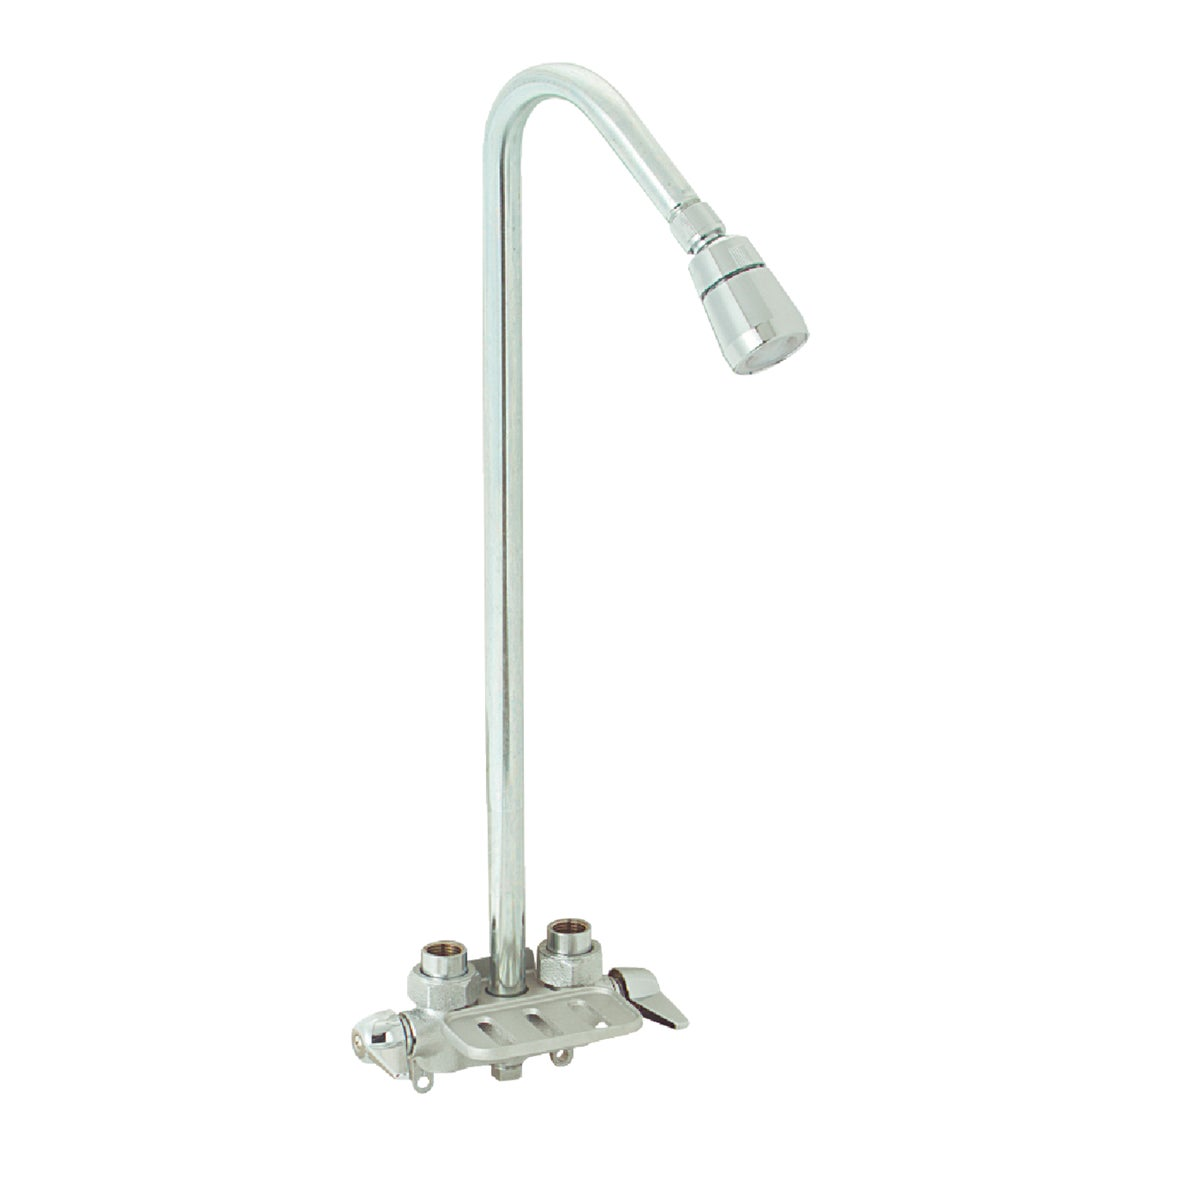 UTILITY SHOWER FAUCET - 126-005 by Mueller B K